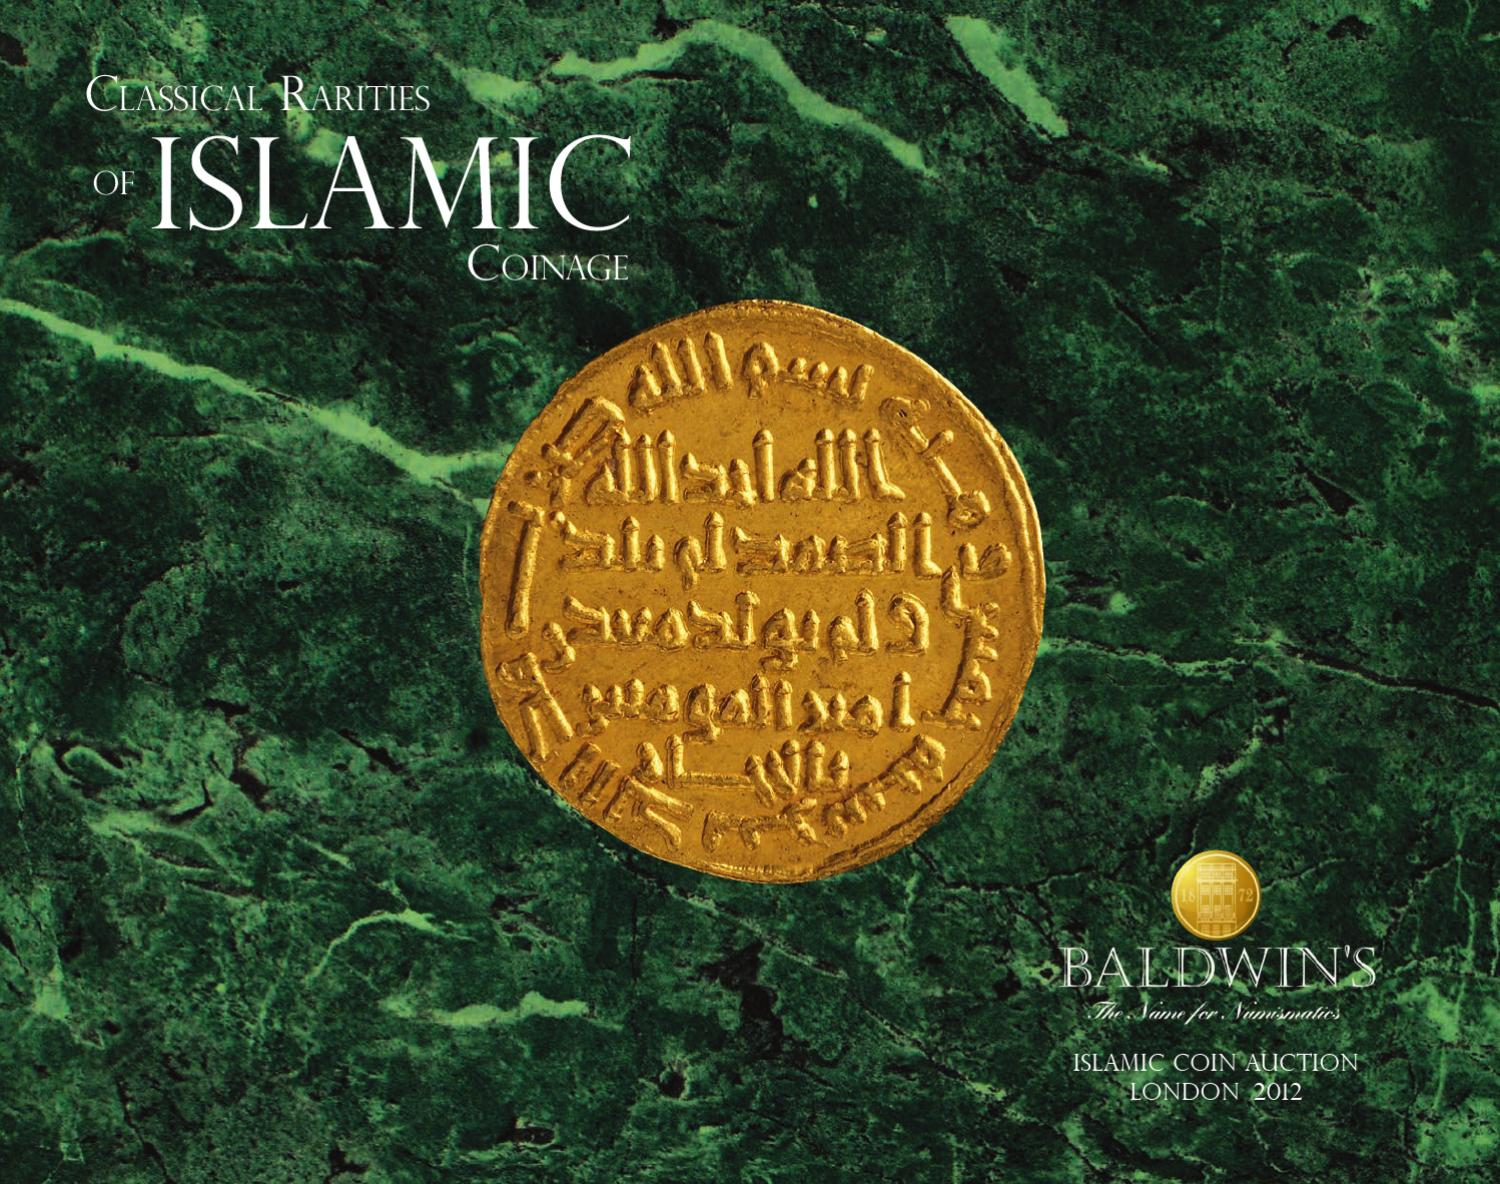 Baldwin 39 s islamic collection by jamm design ltd issuu for 11 adelphi terrace london wc2n 6bj